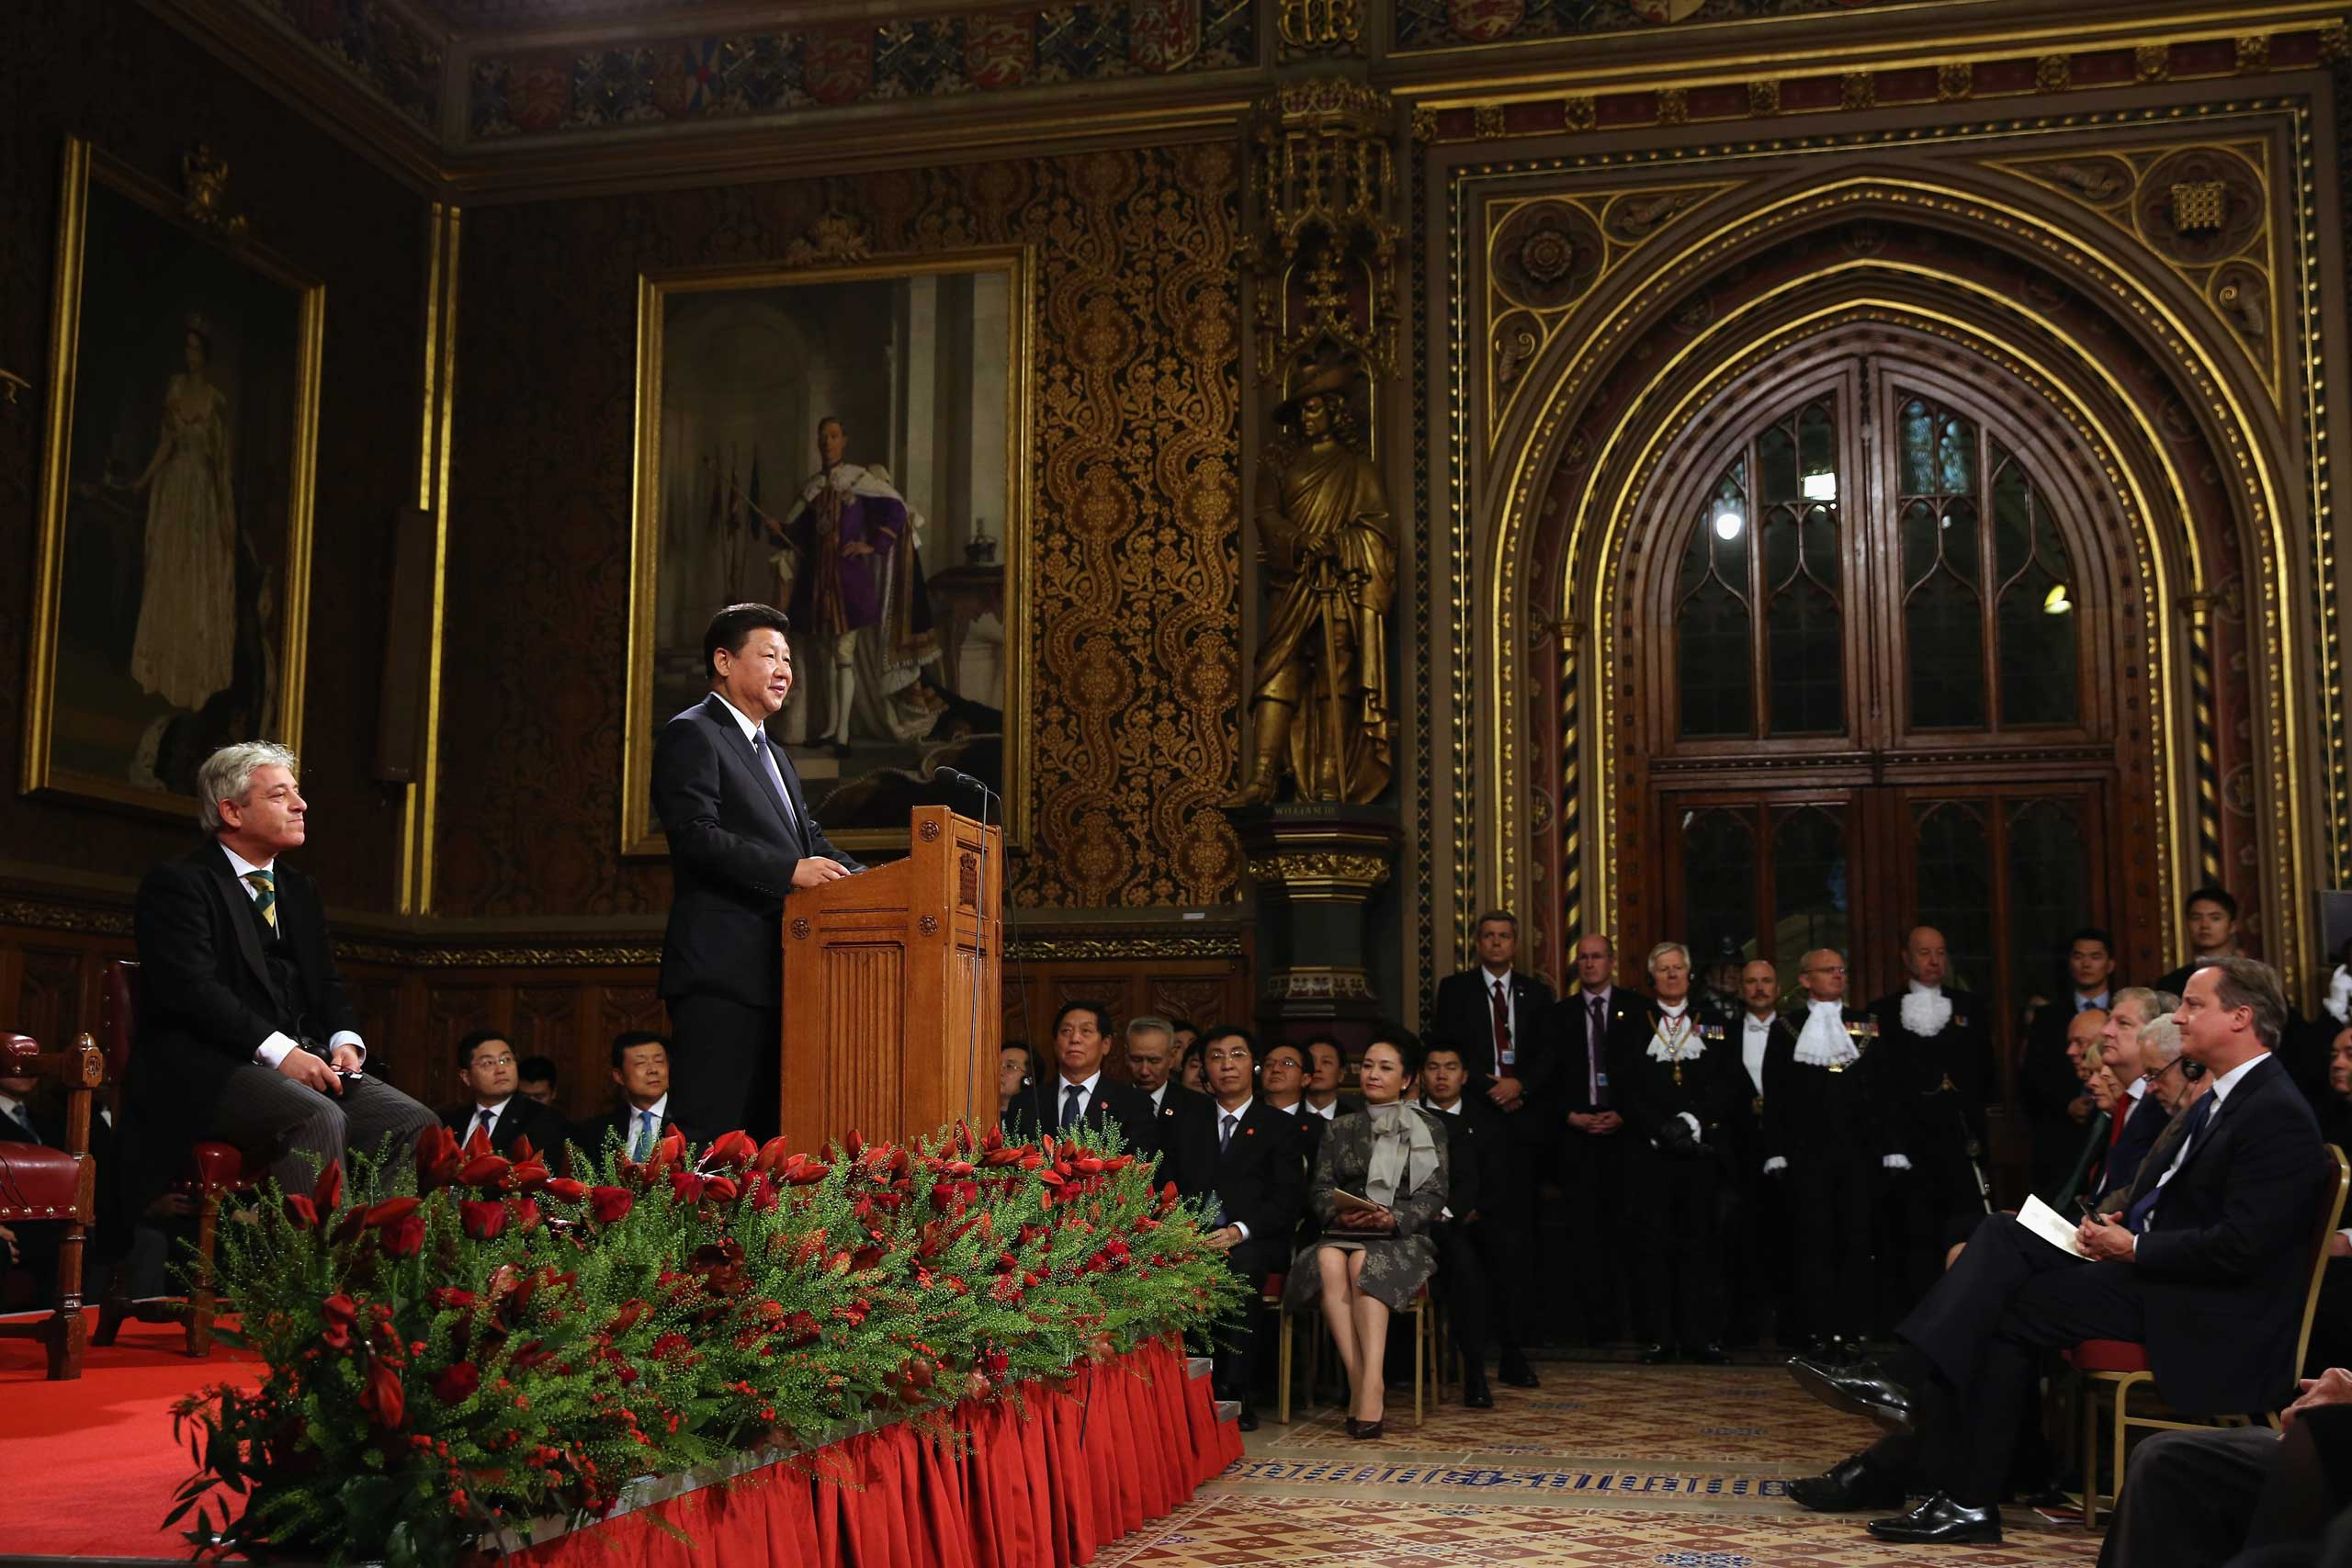 President, Xi addresses MPs and peers in Parliament's Royal Gallery in London, on Oct. 20, 2015.